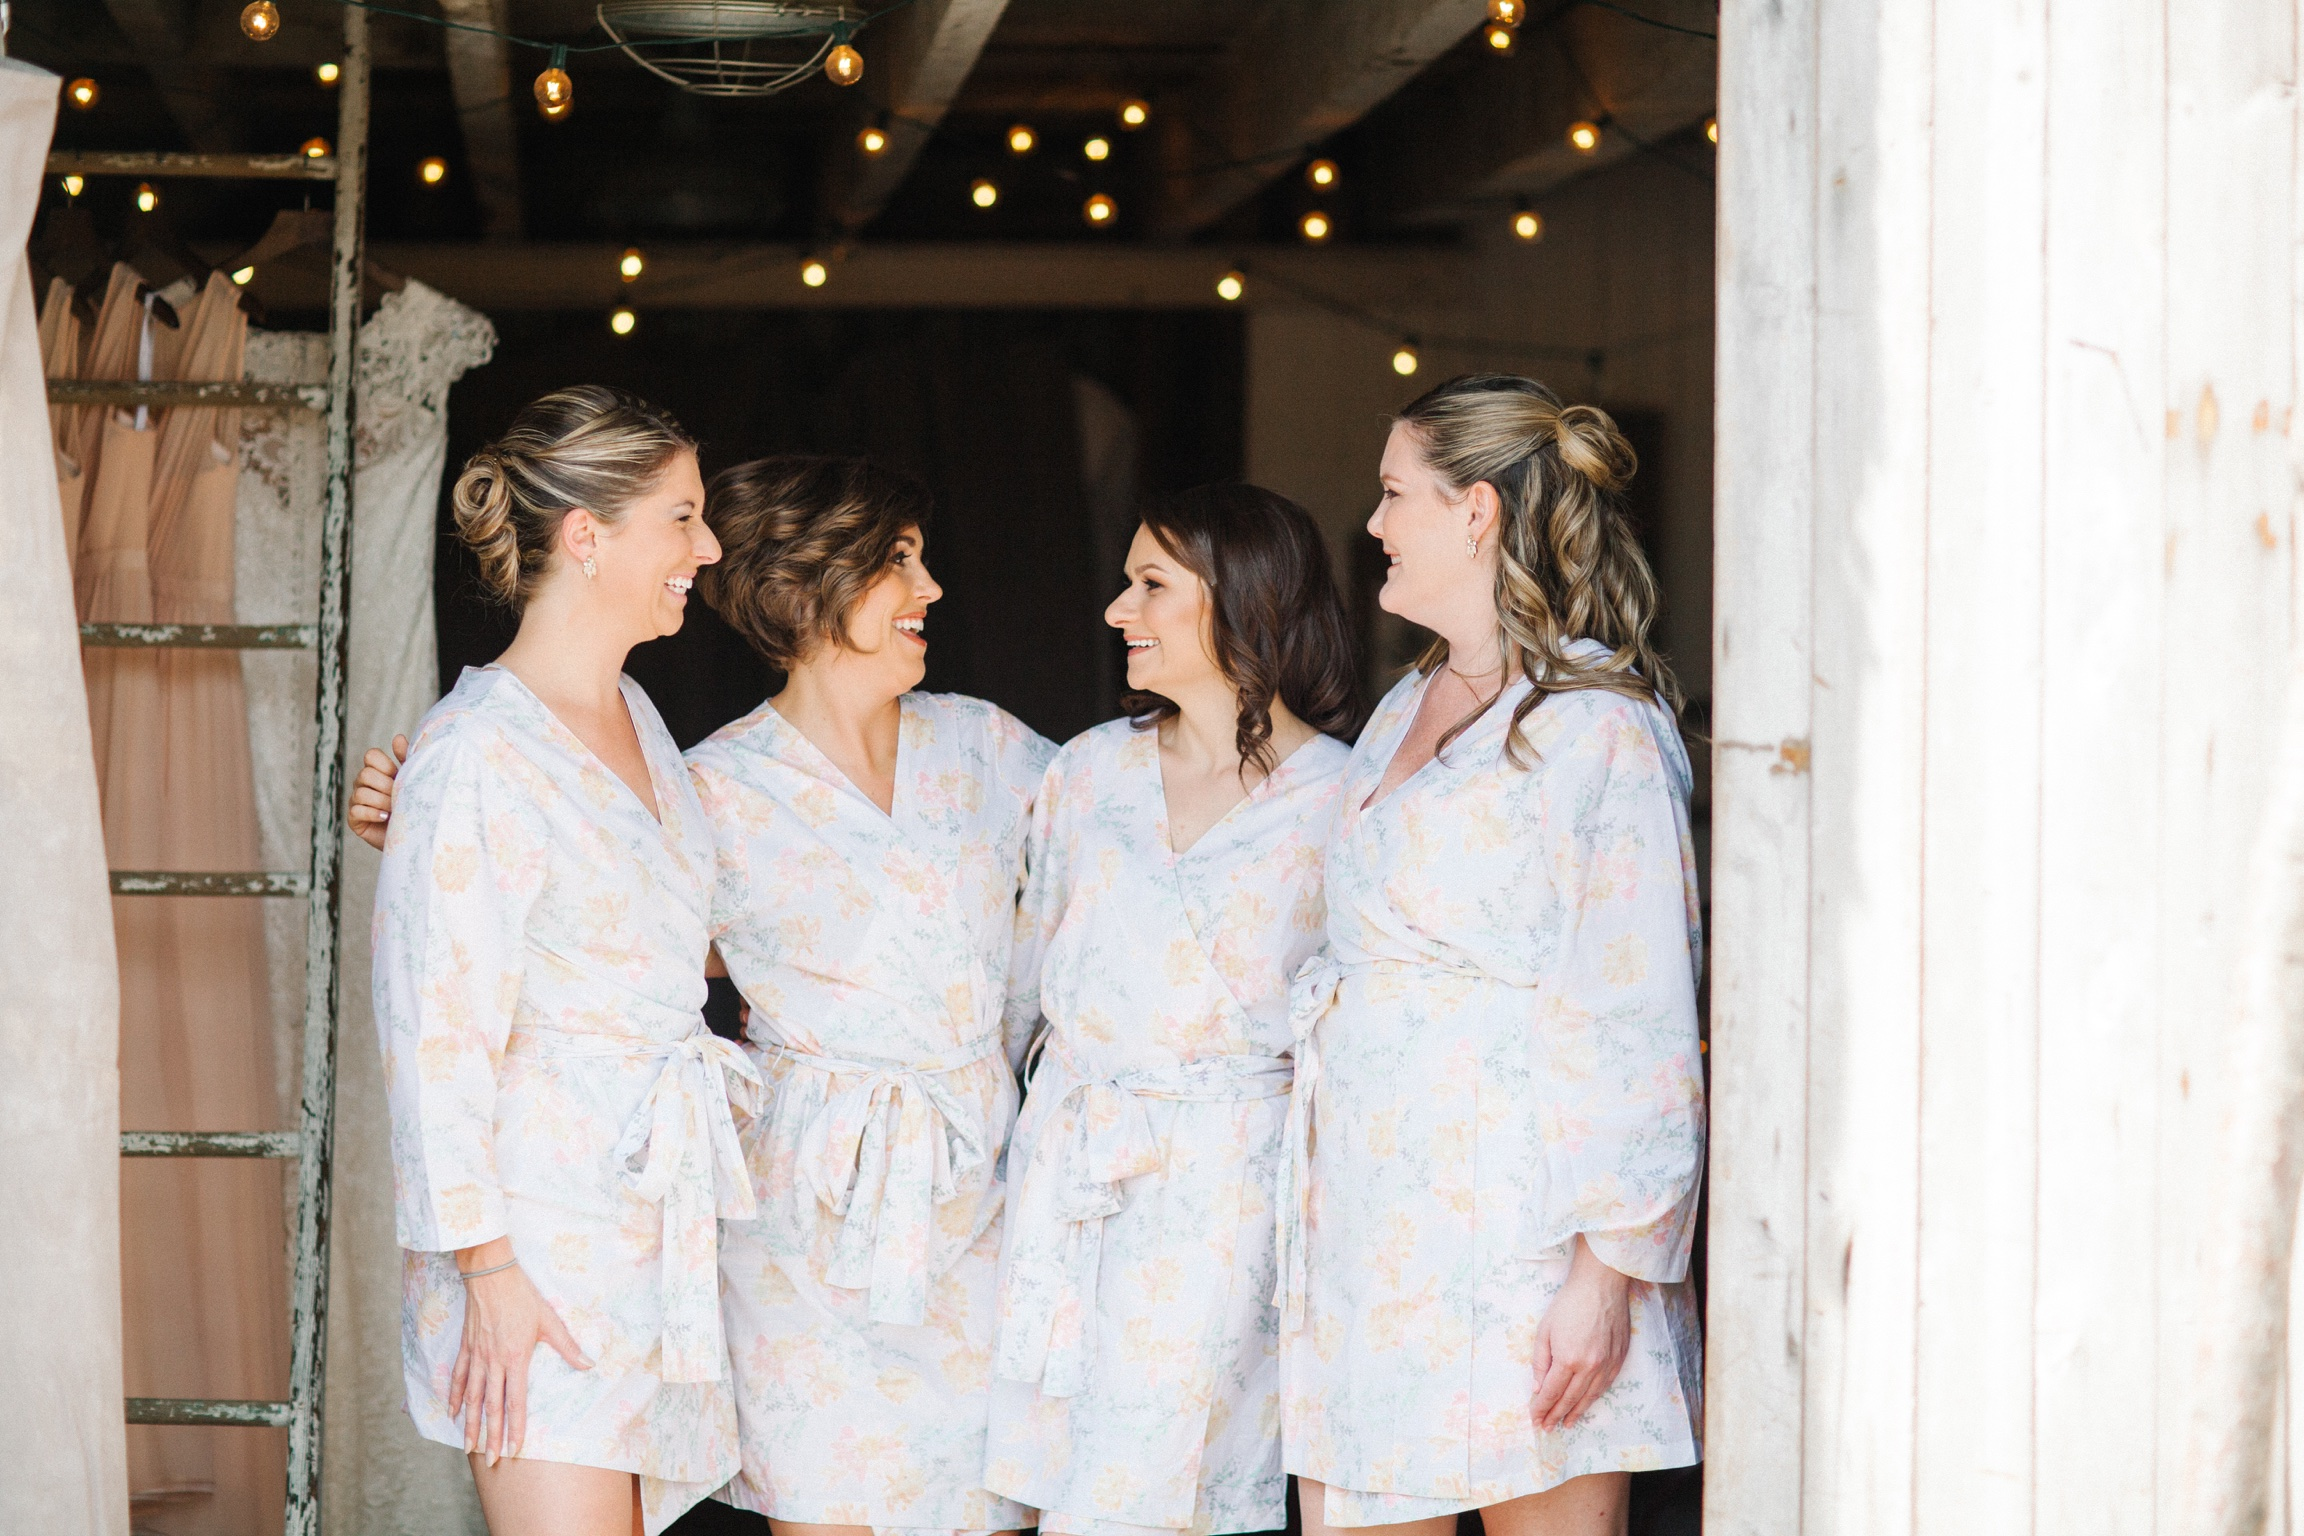 Peach Plum Pear robes for bridesmaids in the Mushroom House at Terrain